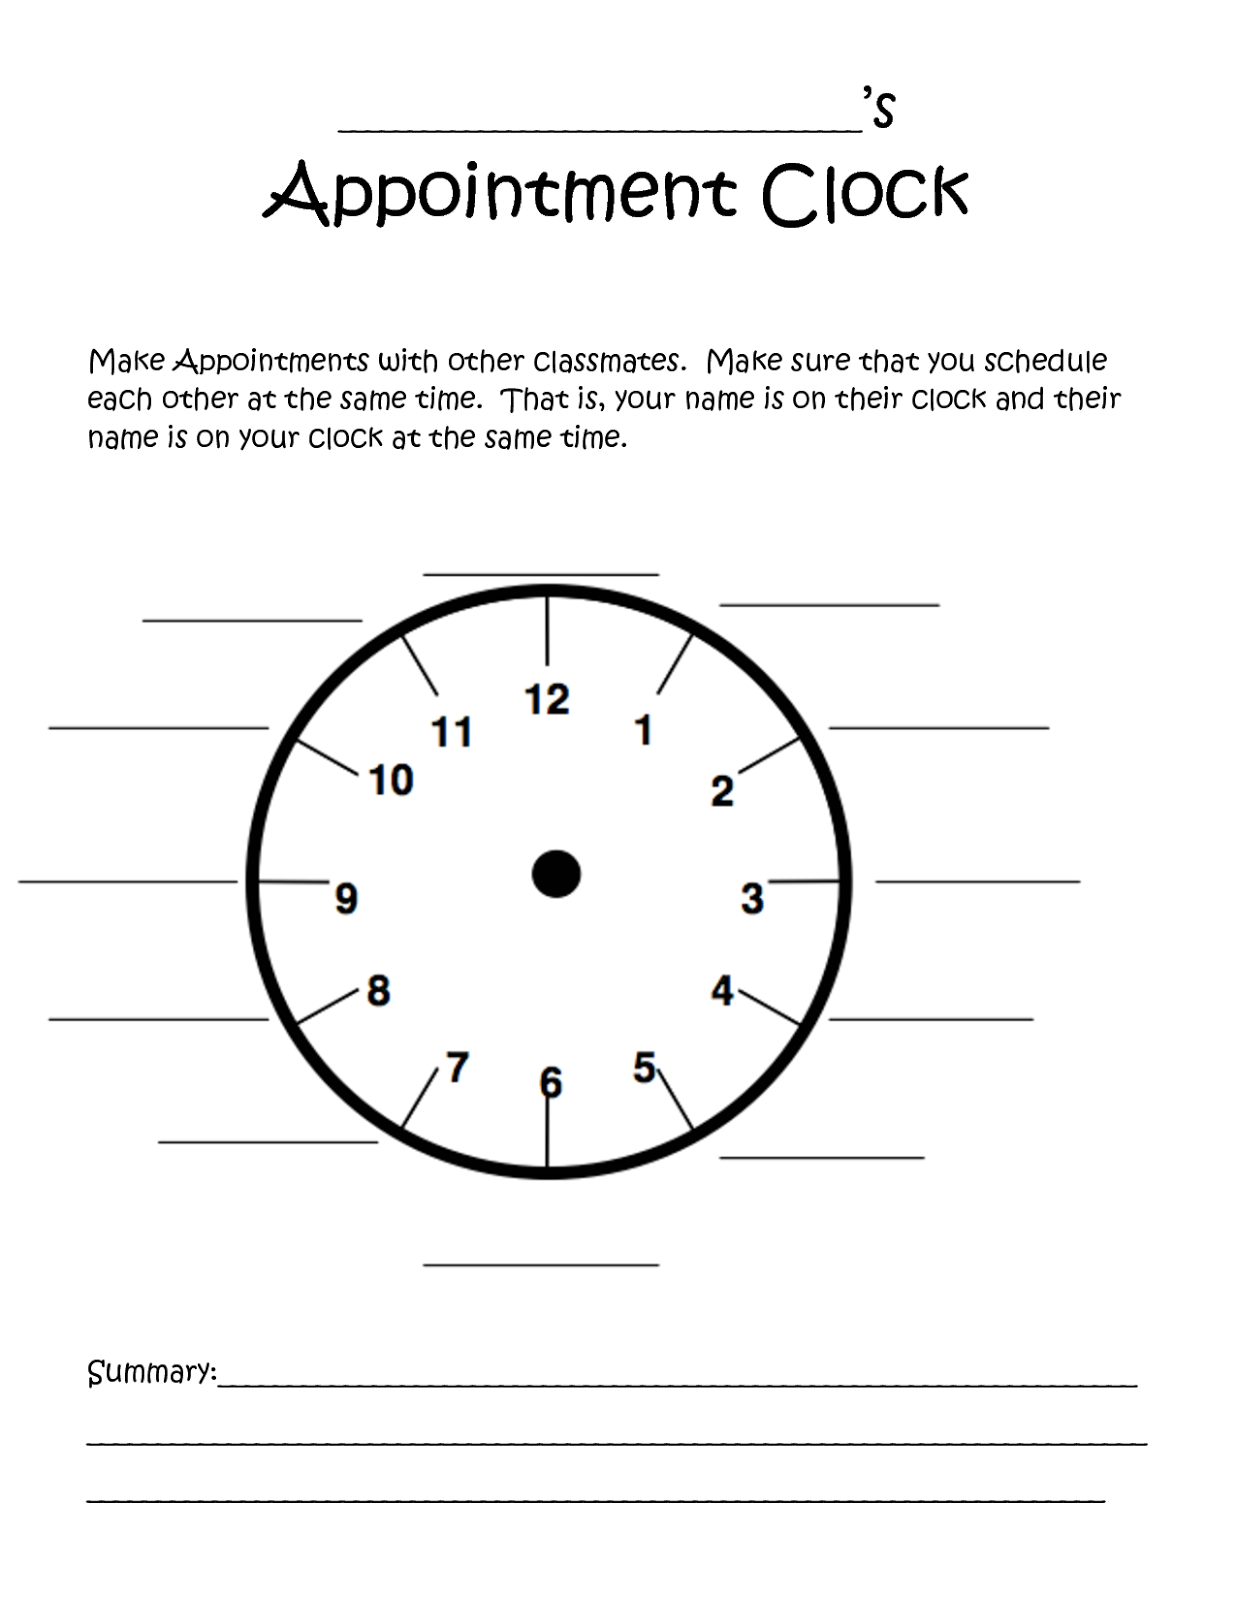 Teaching Strategies Appointment Clock